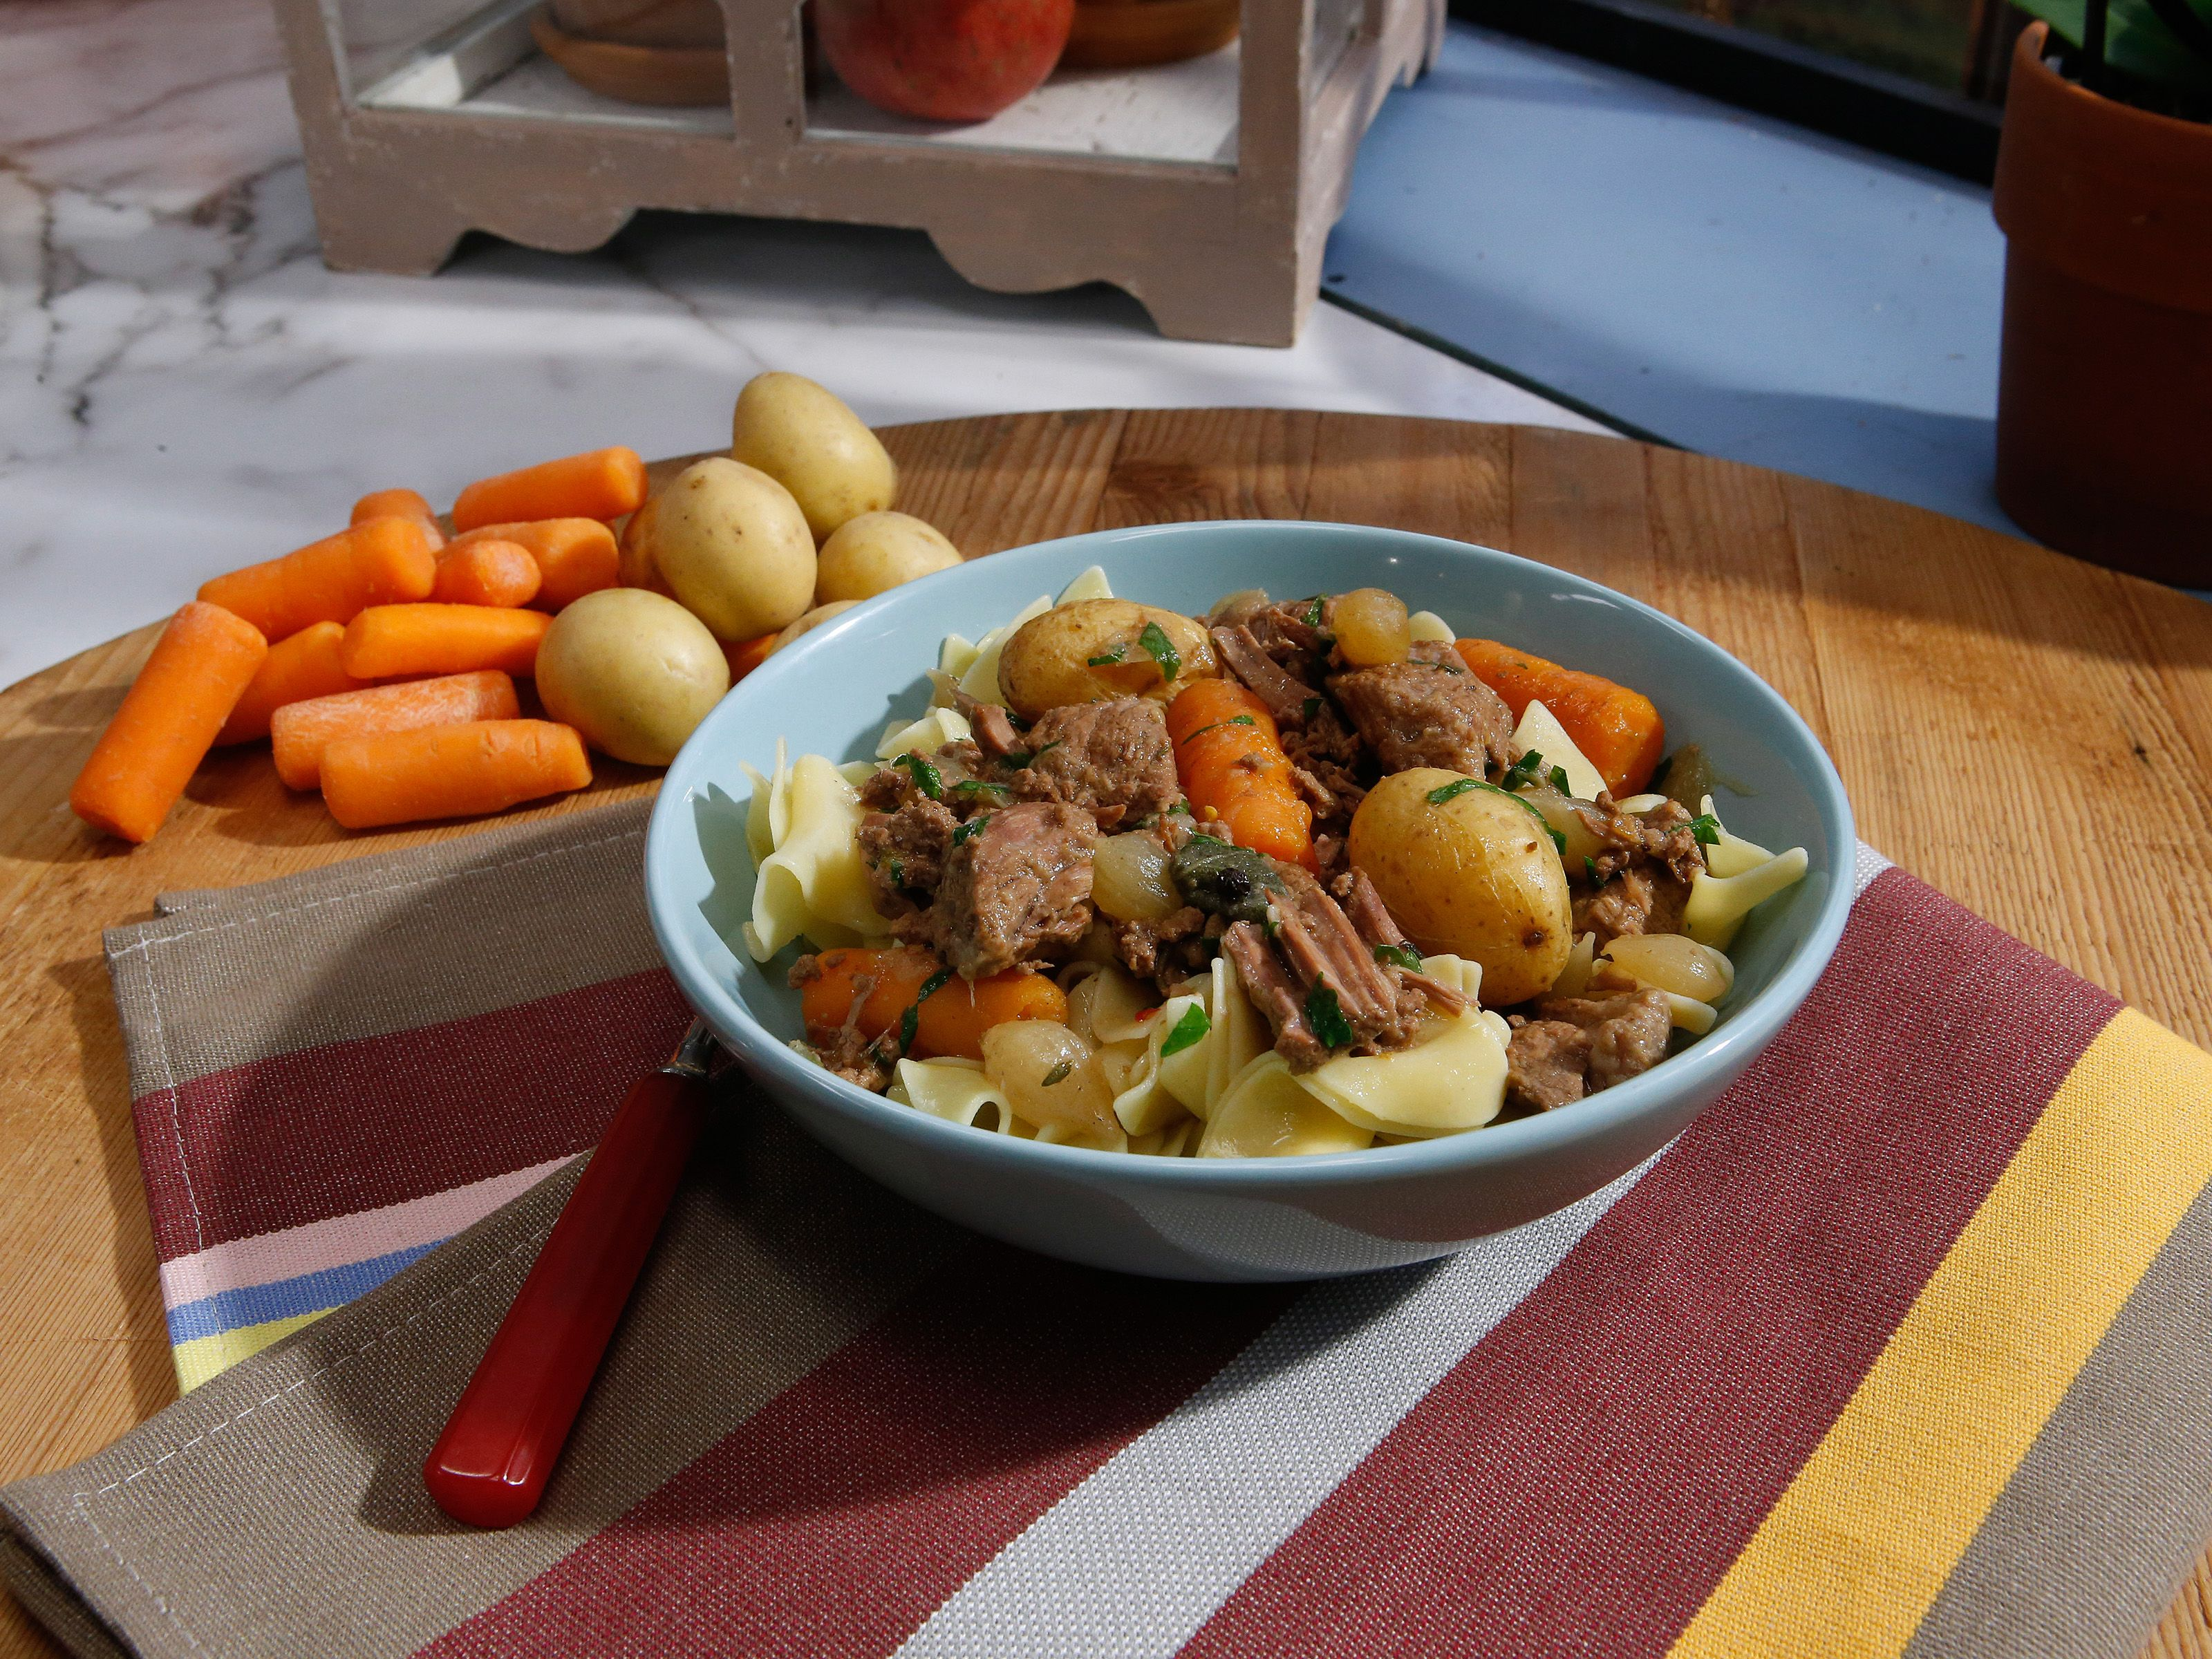 Sunny S Easy Beefy Stew Recipe Recipes Stew Recipes Food